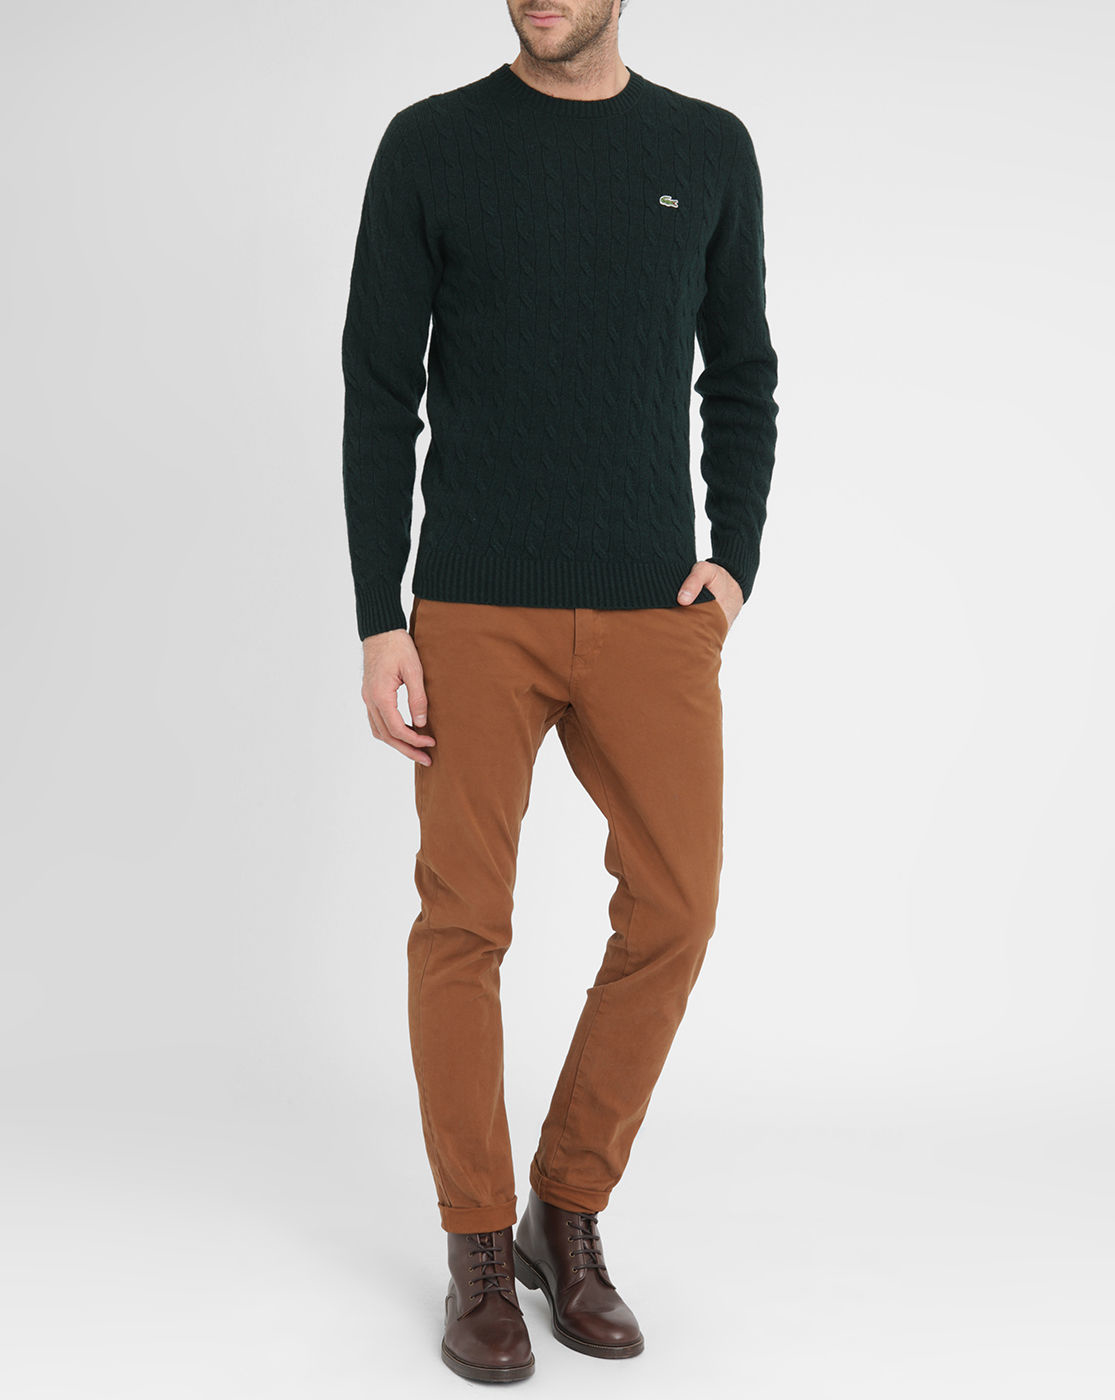 Ralph Lauren Native Sweater 62